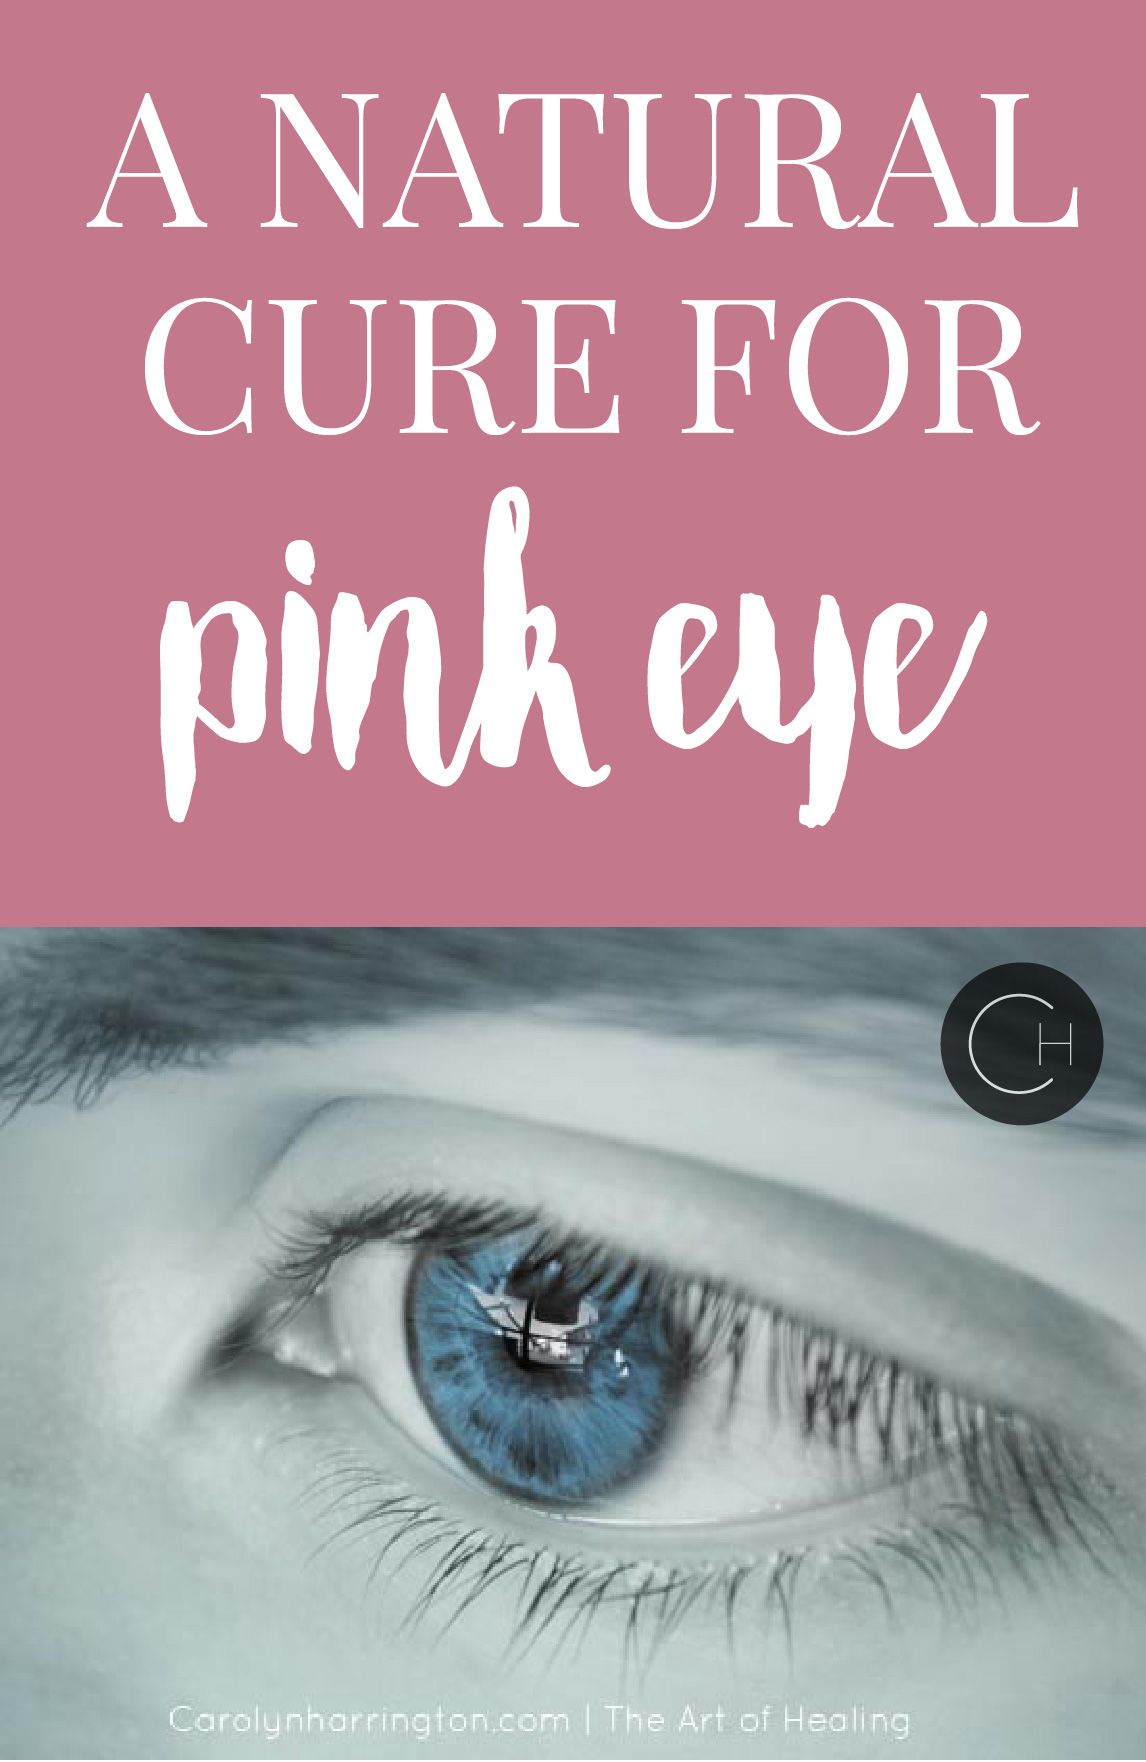 This at home remedy is an easy DIY when your kids have pink eye. It's a natural way to get rid of pink eye without drugs or medication.